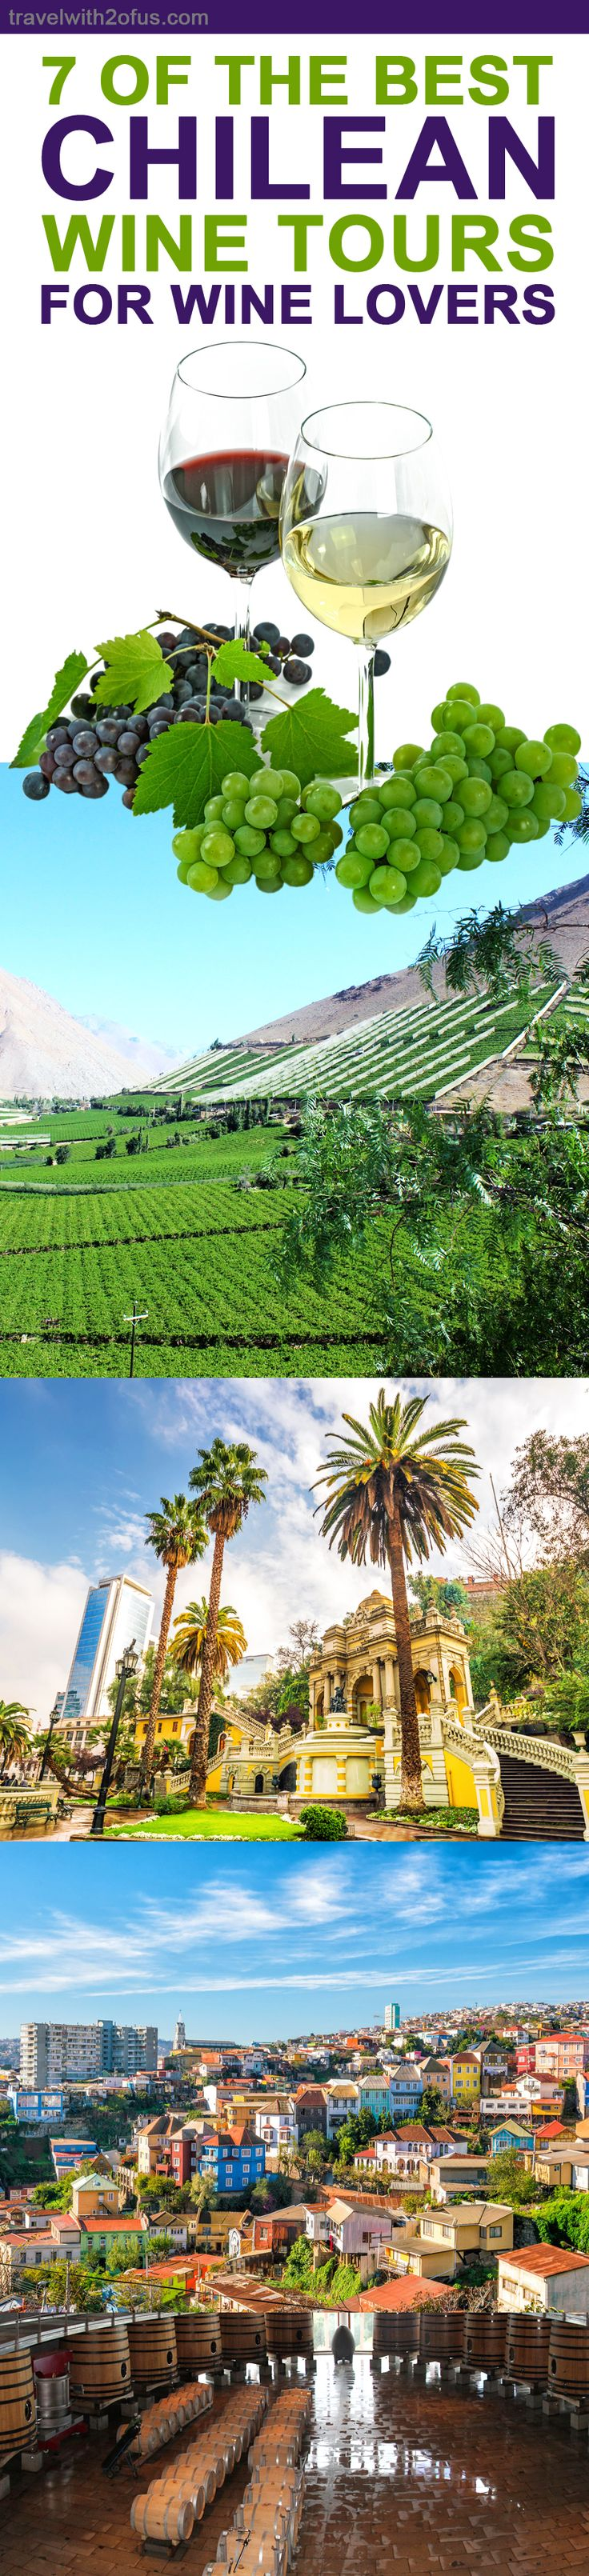 Check out seven of the best Chilean wine tours for lovers of wine and those who are just curious about how wine is made. They are also great for those who just want to spend the day outside and enjoy the fresh air and scenery of the breathtaking vineyards of Chile.